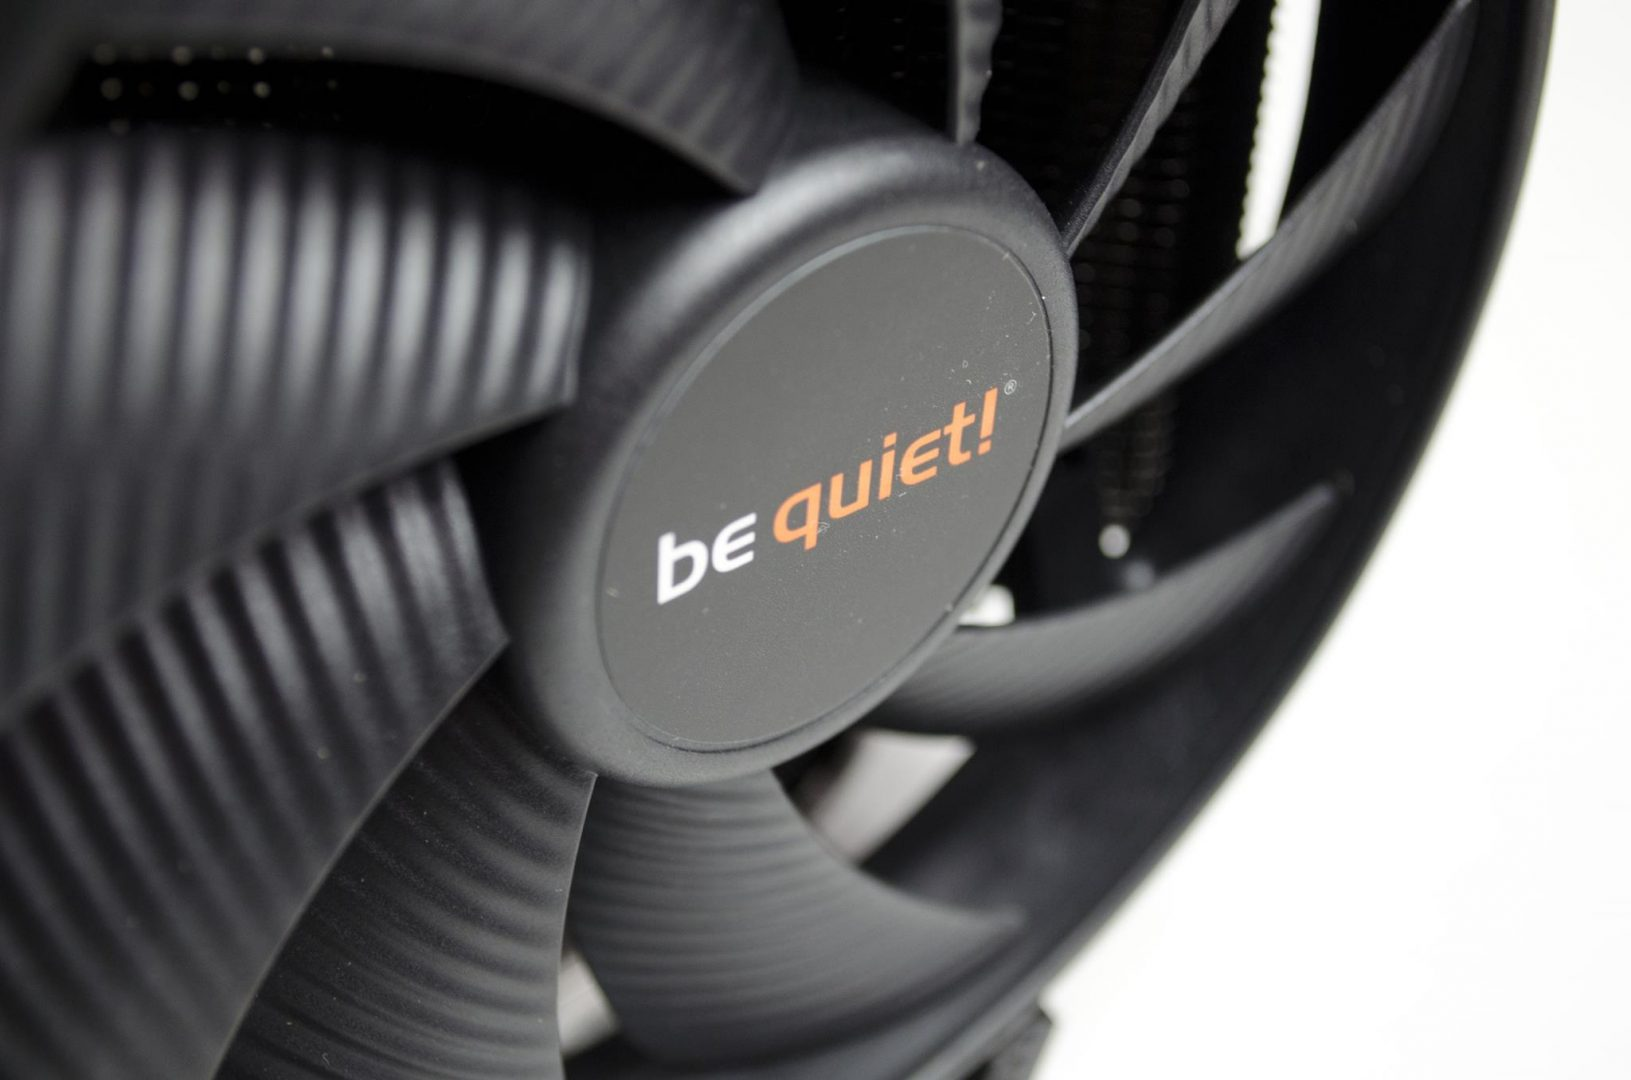 be quiet! Dark Rock Pro 3 CPU Cooler Review_9